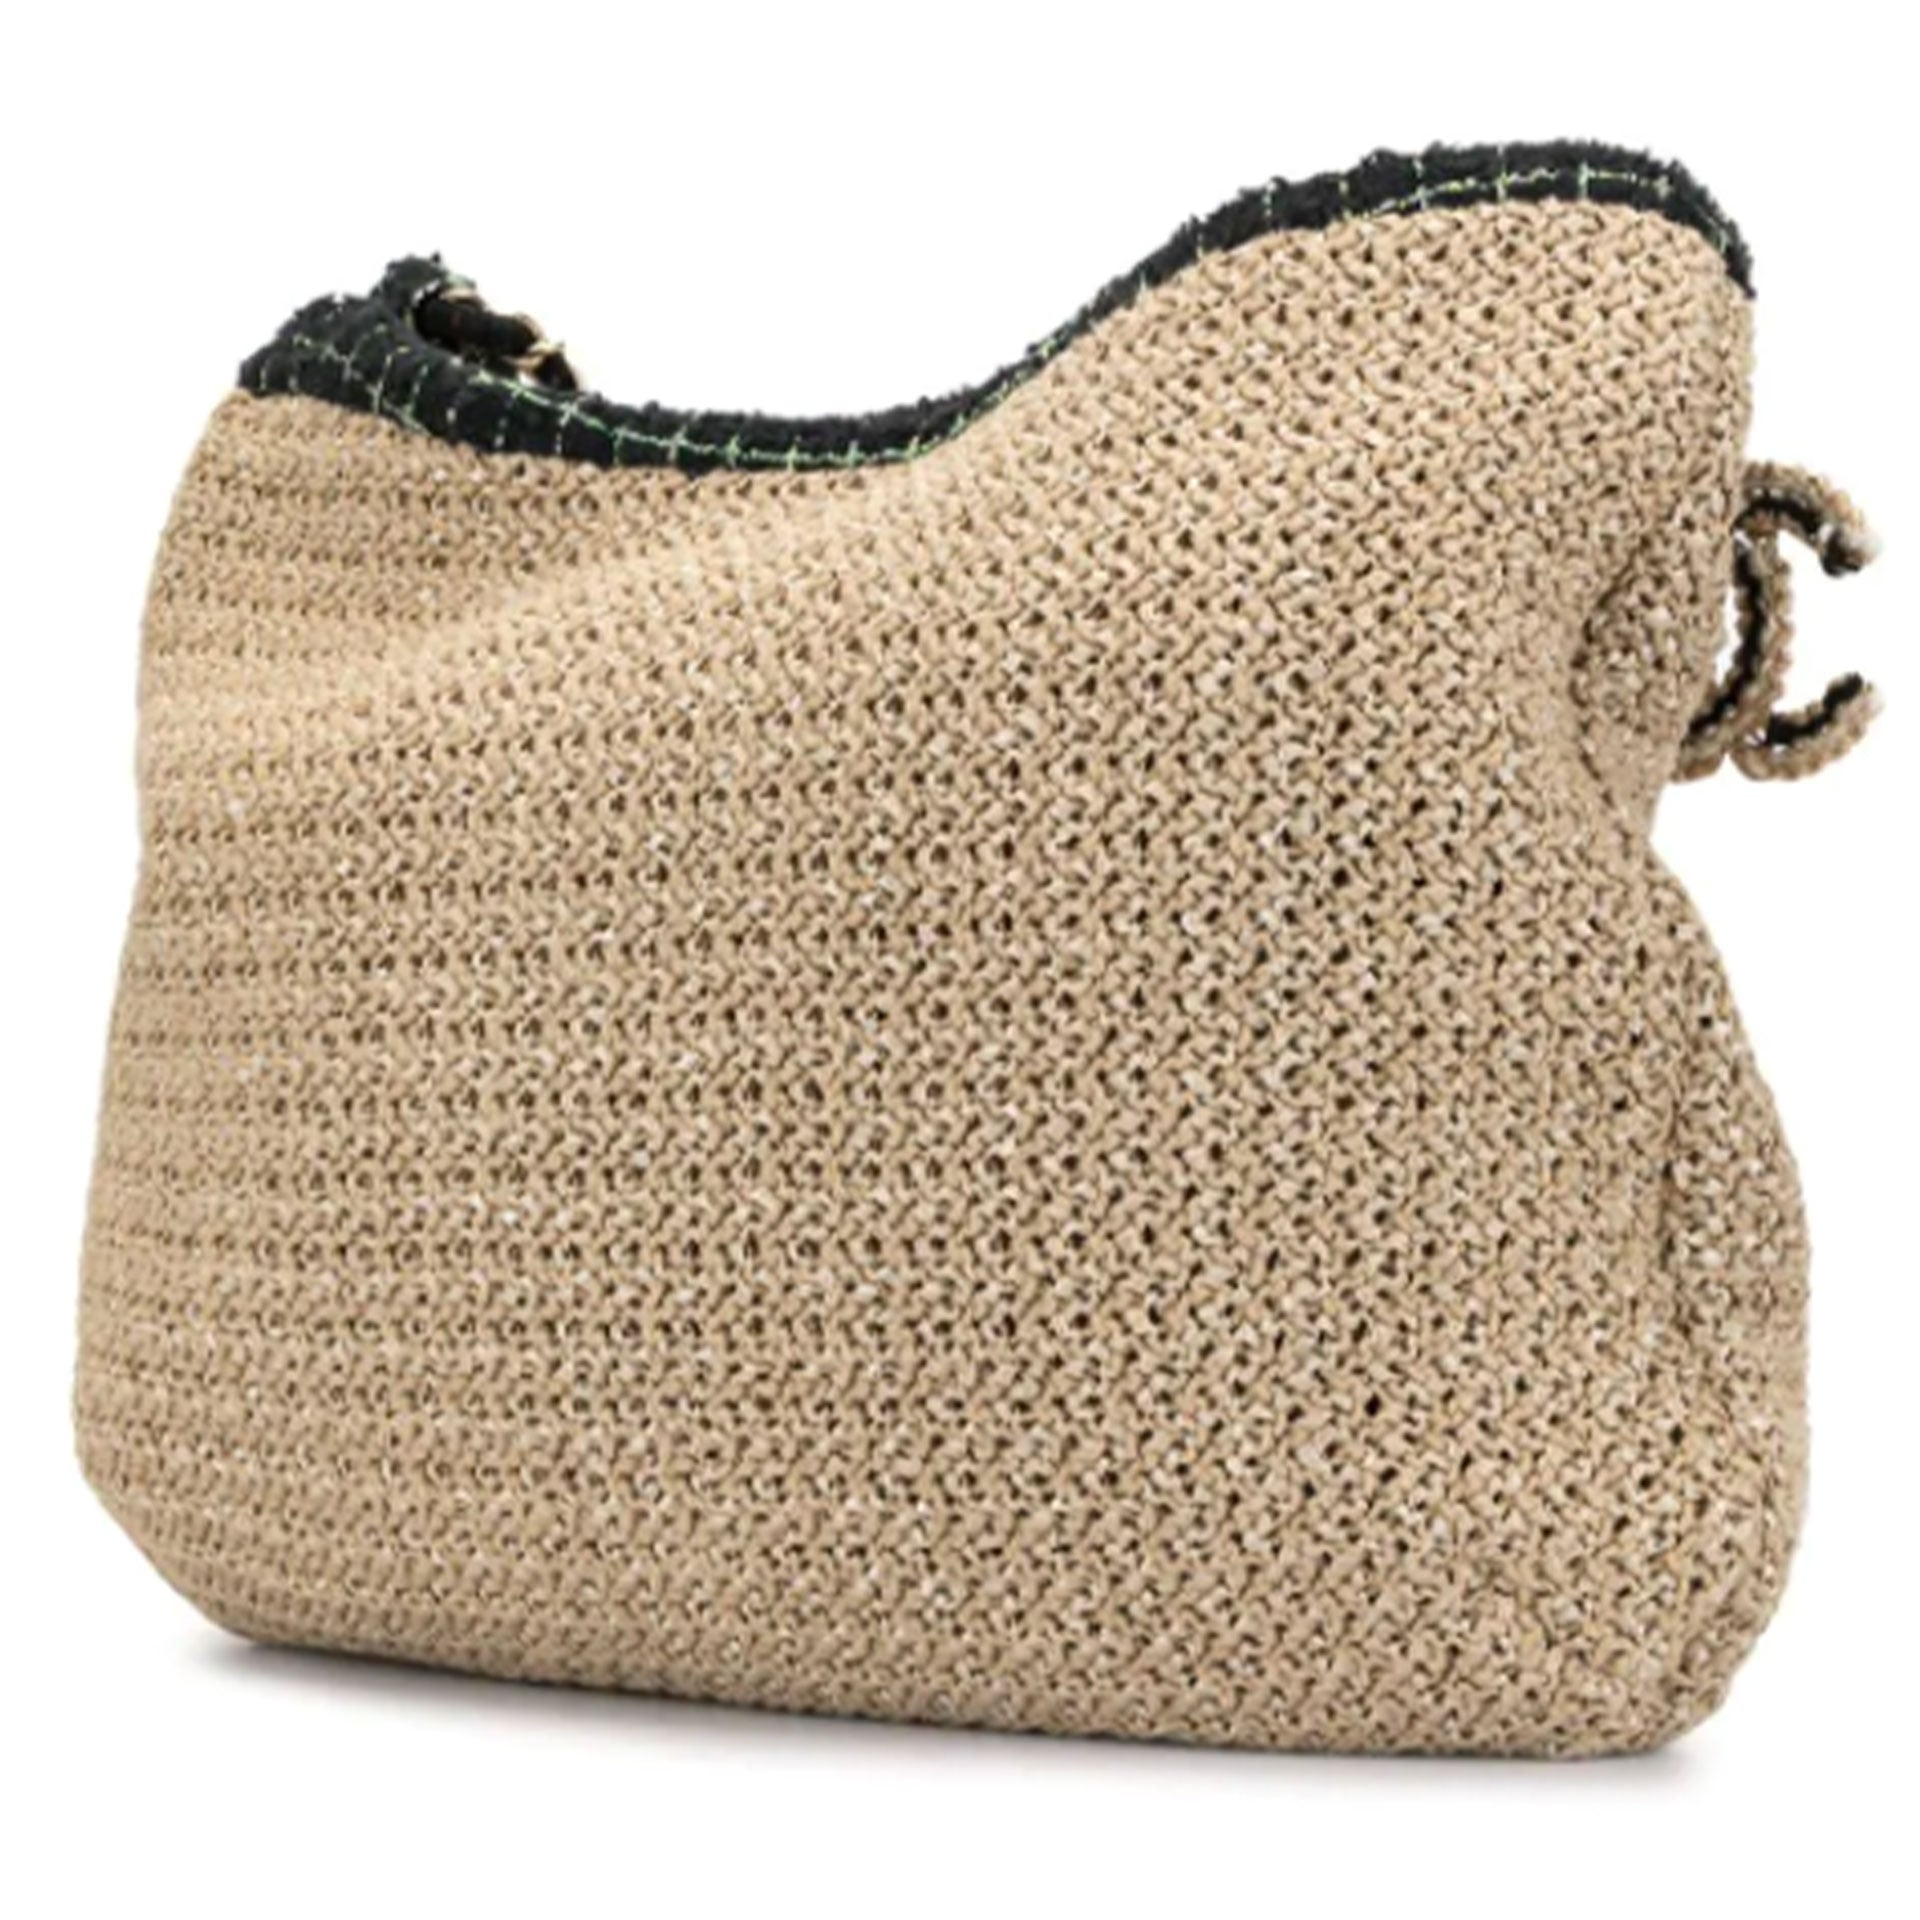 Chanel Organic Camelia Large Tweed Rope Tote